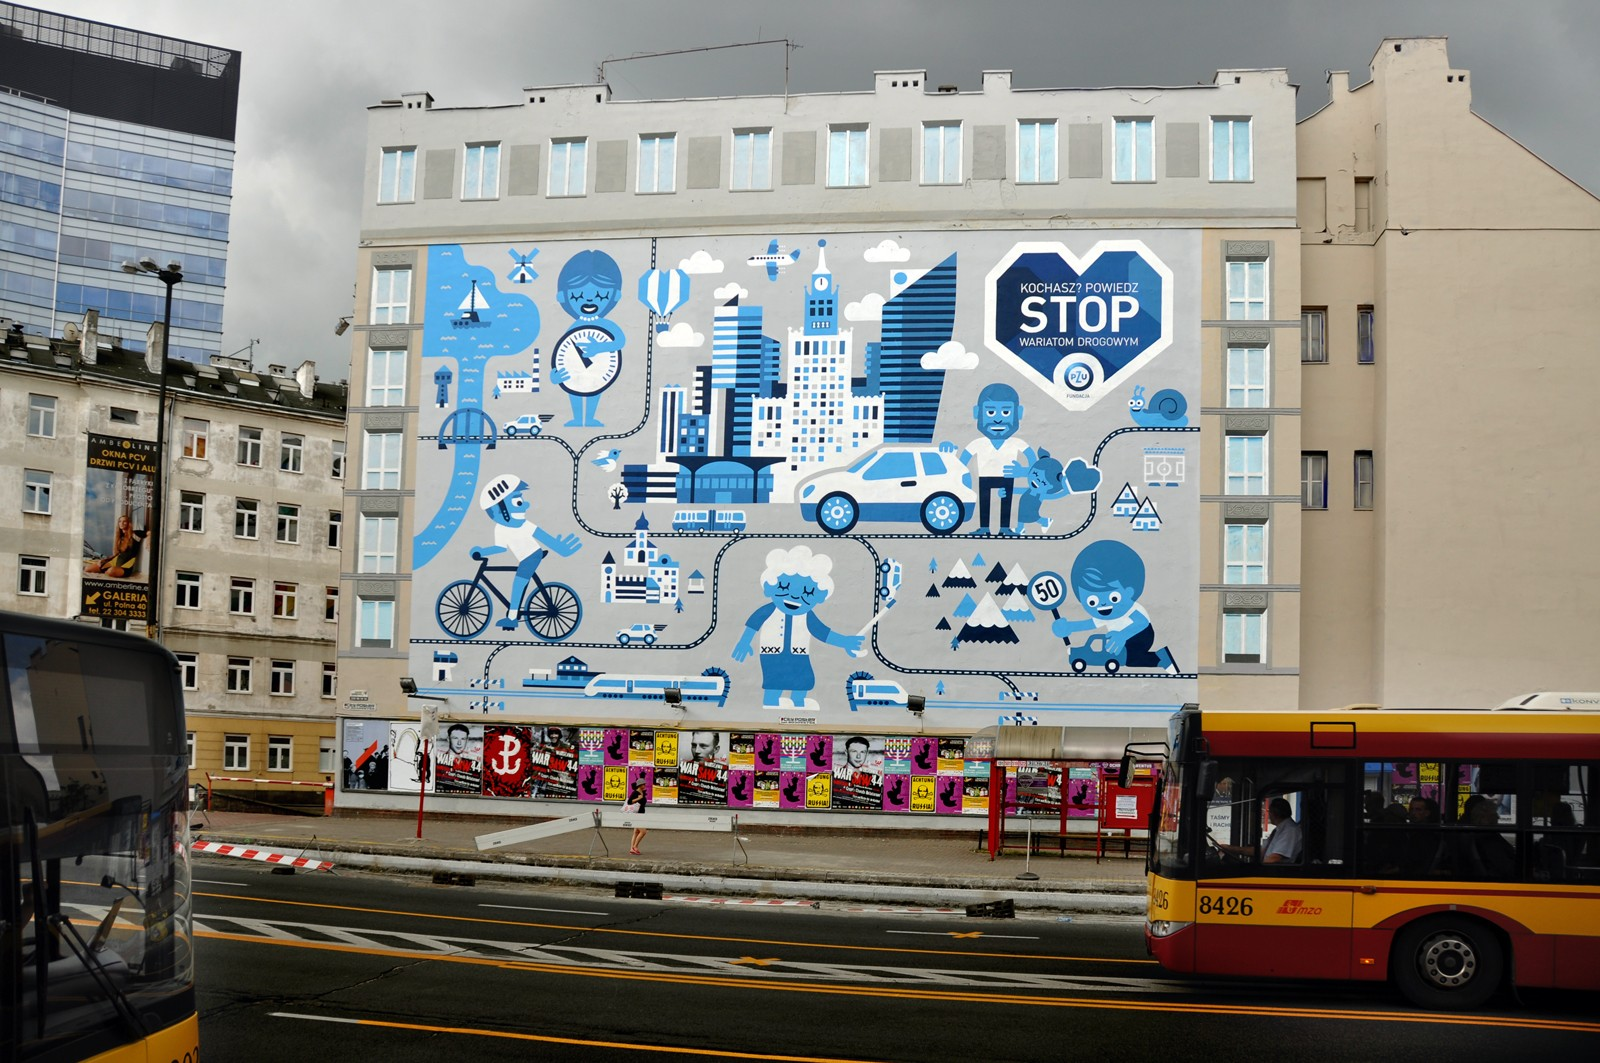 PZU Stop roadhogs mural in Warsaw near Polna street and Politechnika subway station | Stop roadhogs | Portfolio